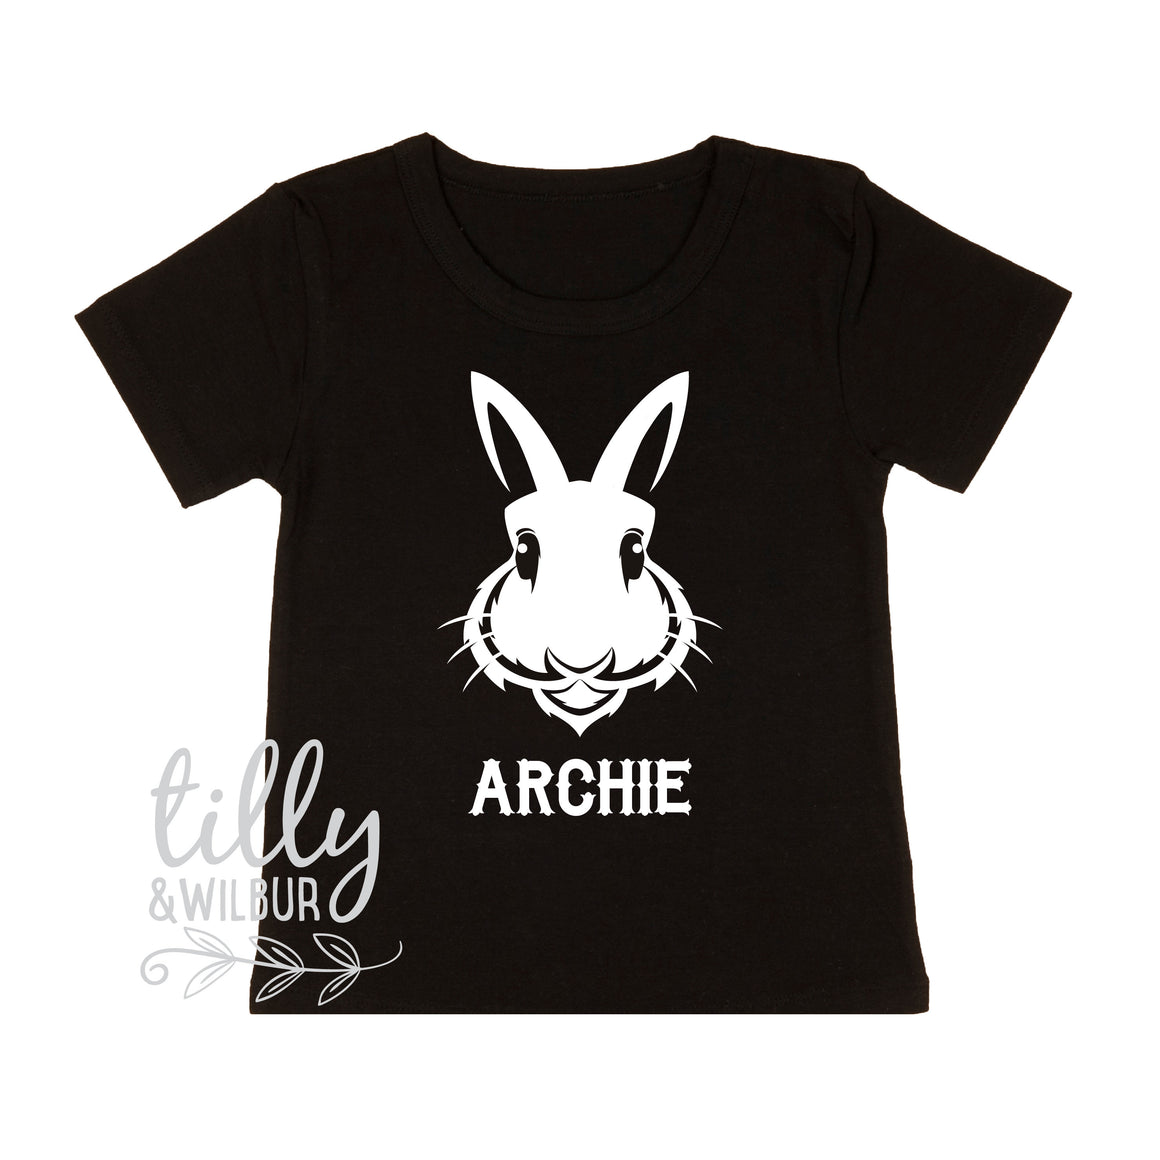 Personalised Rabbit Easter T-Shirt For Boys, Rabbit Shirt, Easter T-Shirt, Boys Easter Gift, Boys Easter Shirt, Hip Hop Boys Easter Clothing